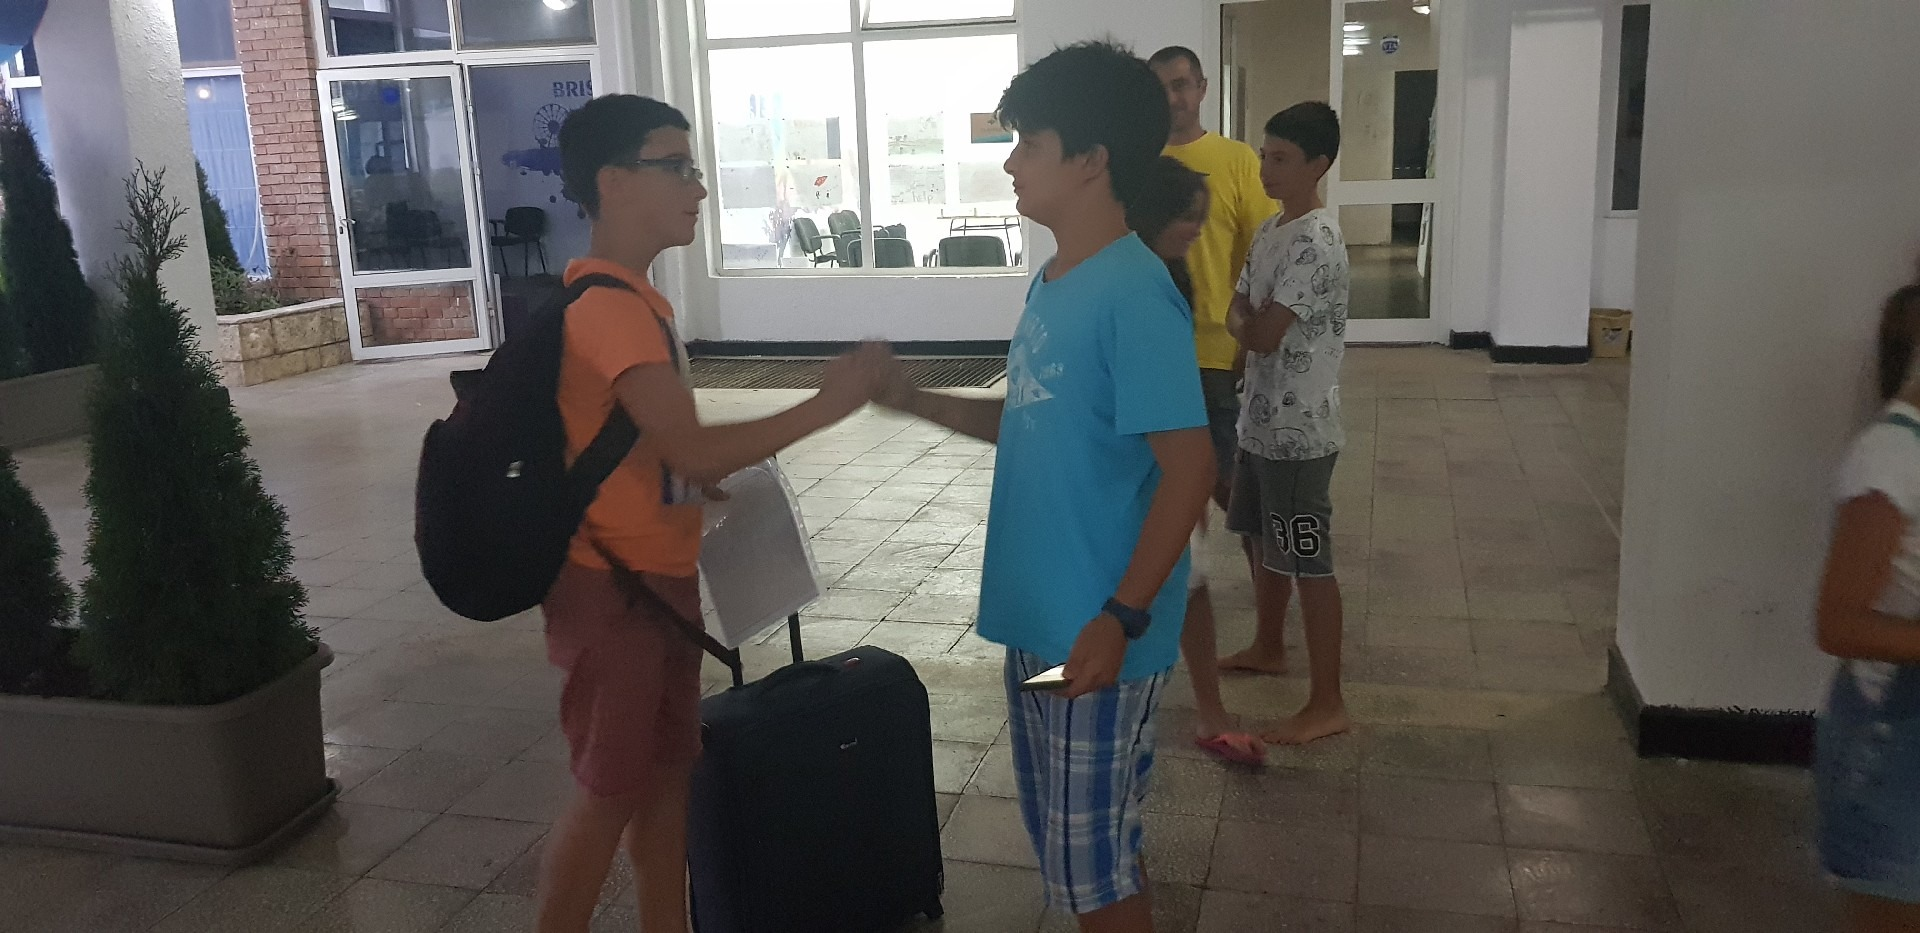 summer language camps for children Z camp, Day 38 - last evening - a boy with a briefcase farewell to another boy